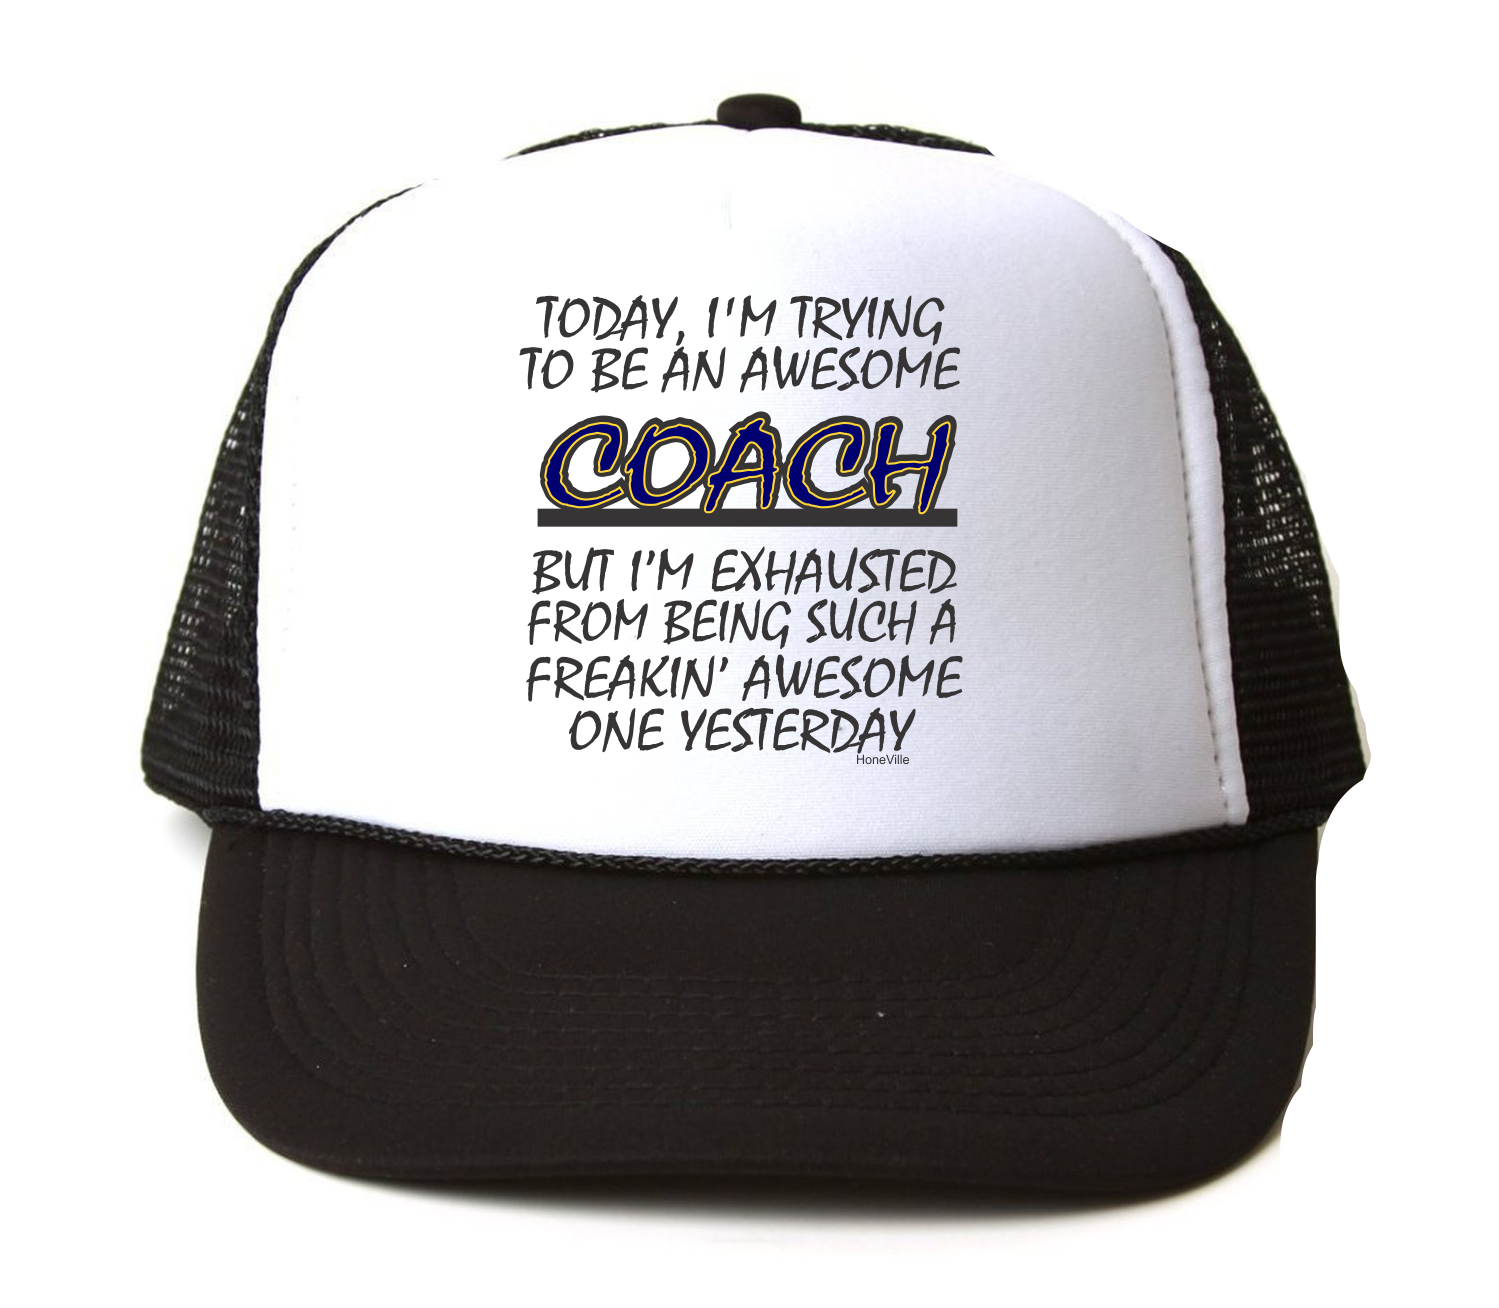 Trucker Hat Awesome Cap Foam Mesh Freaking Awesome Hat Coach Trying Exhausted 054400